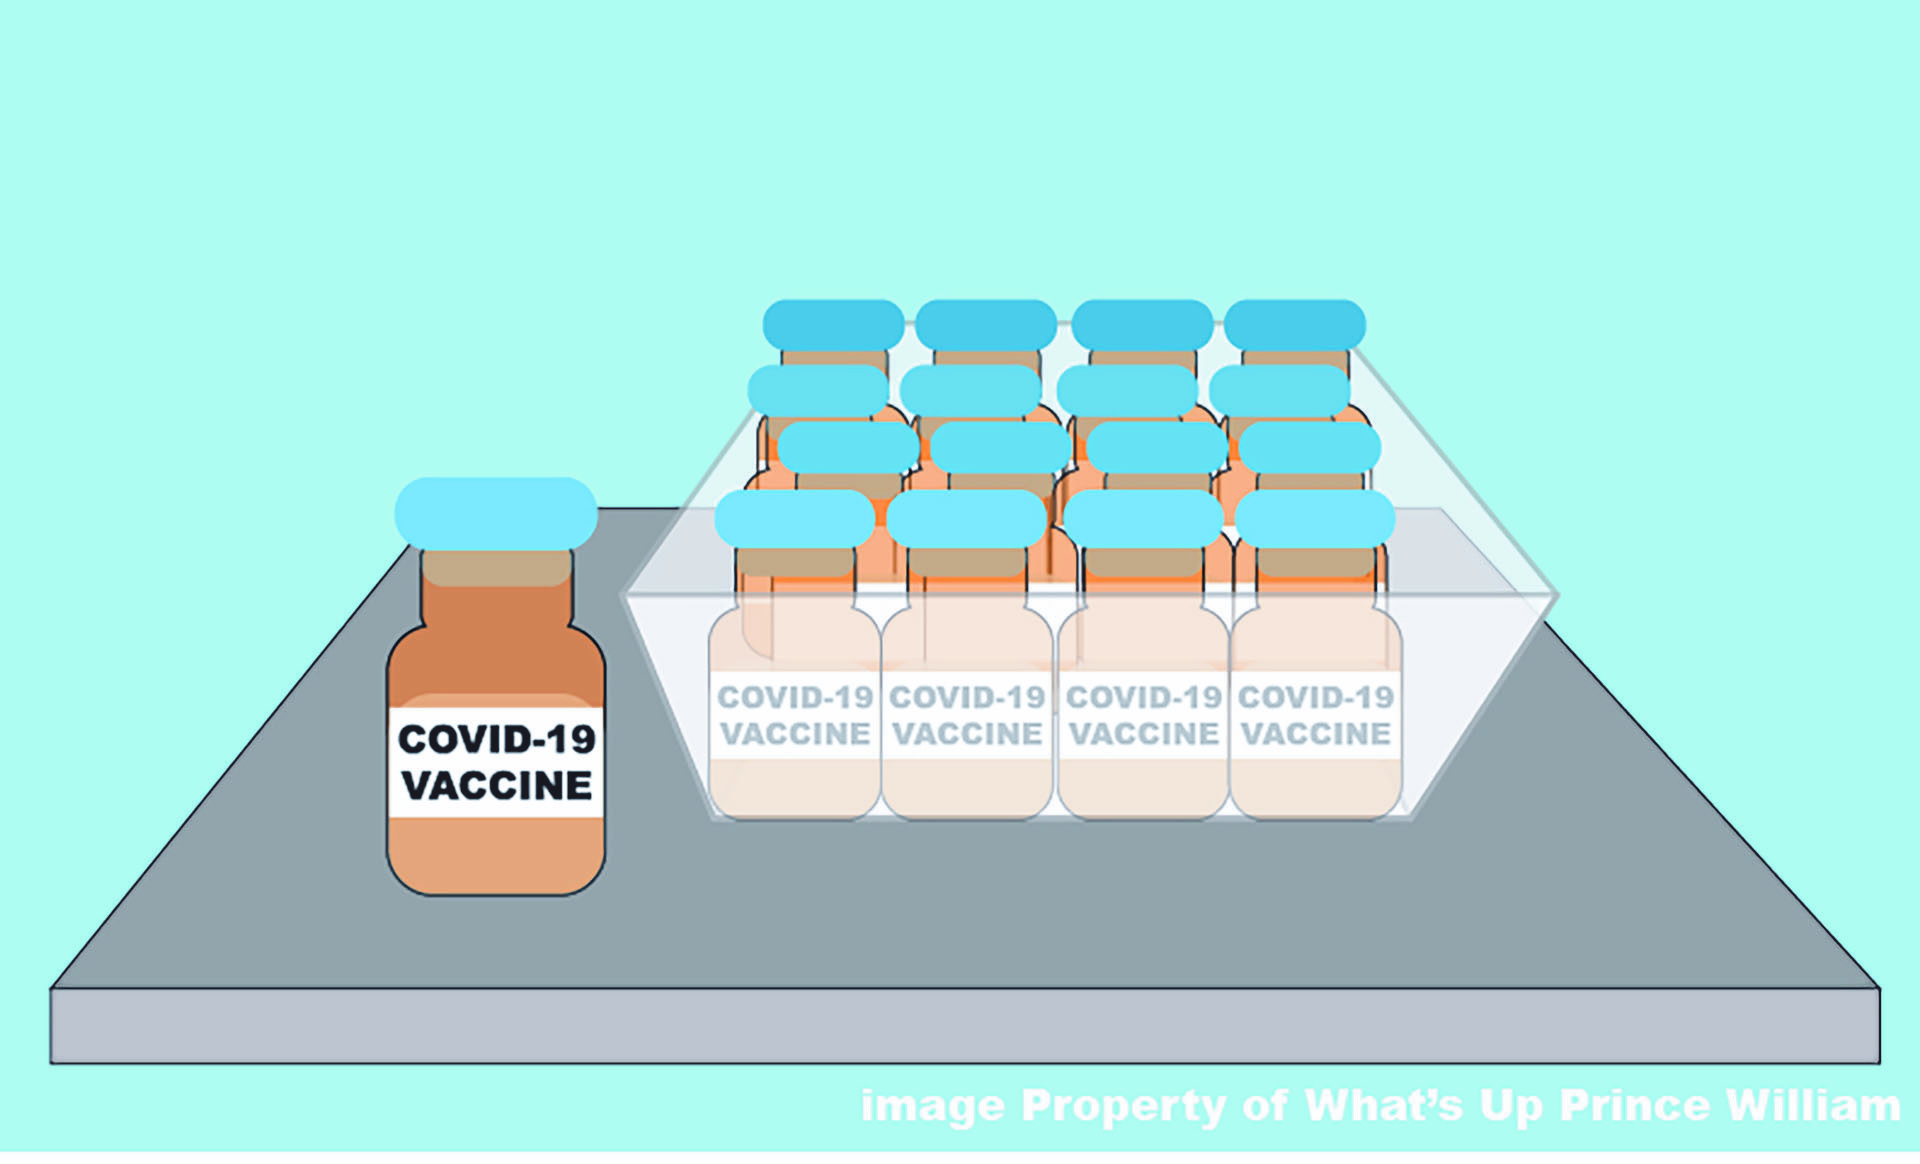 County school system receiving COVID-19 vaccines